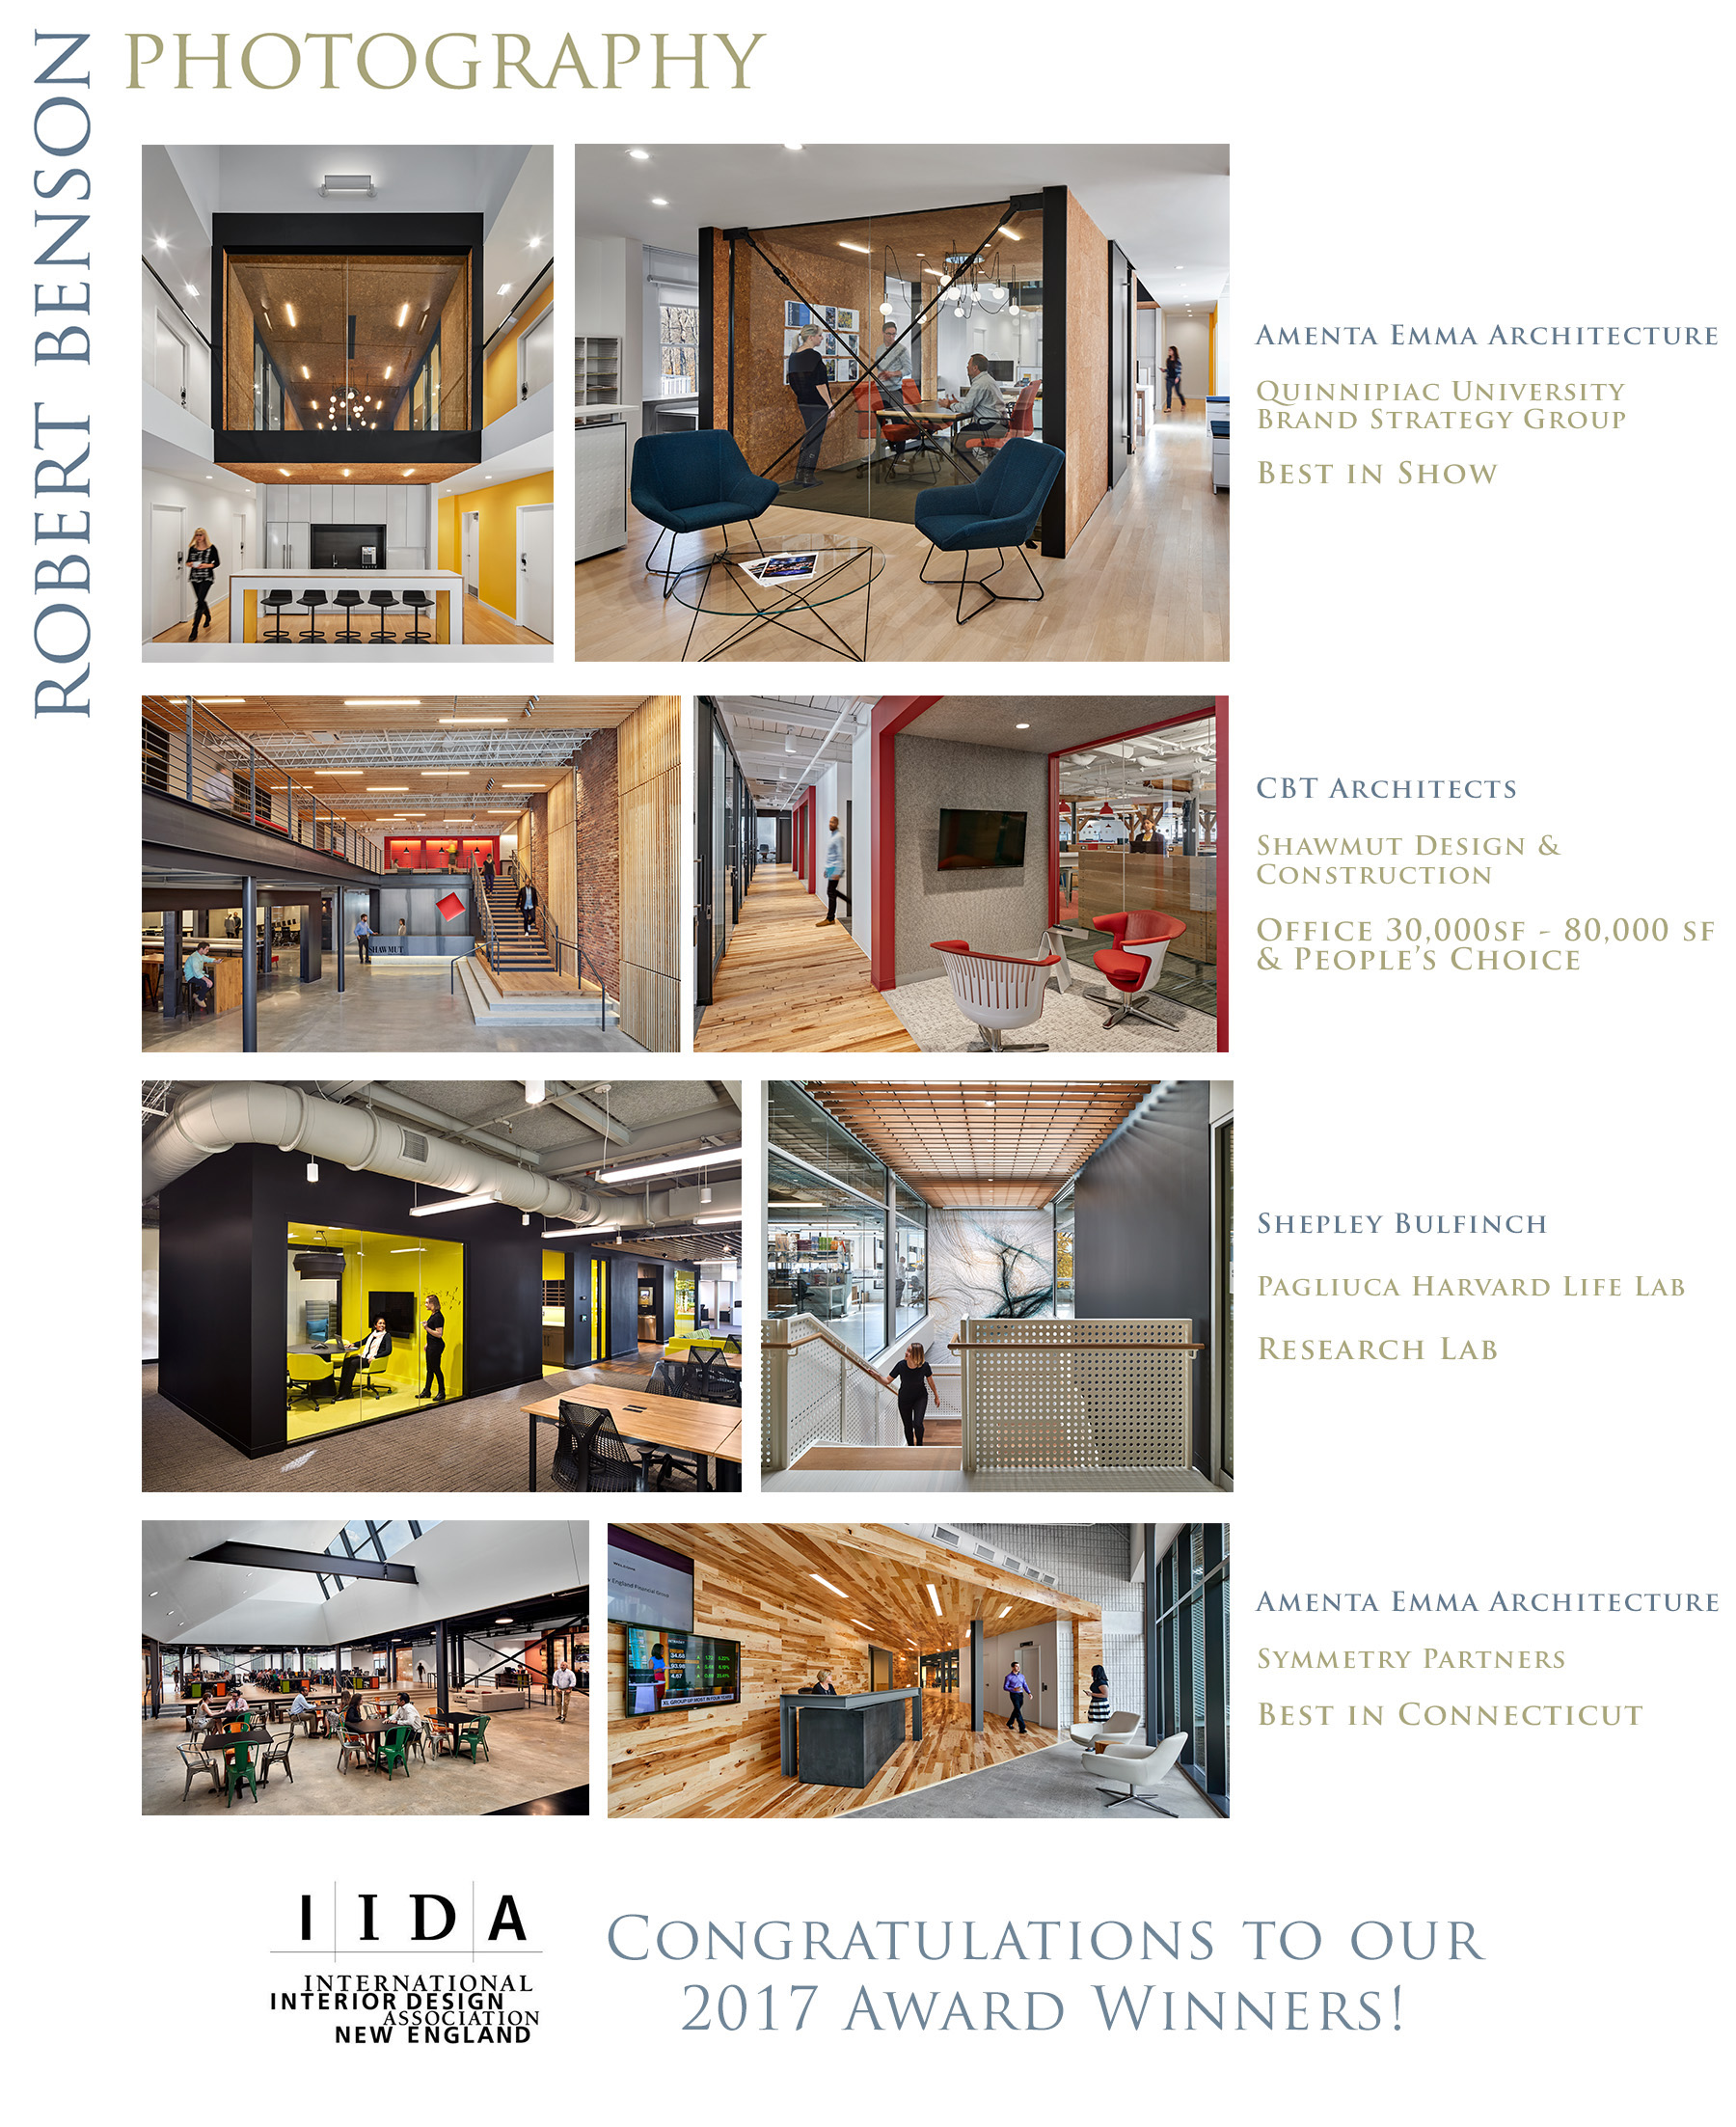 2017 IIDA Award Winners